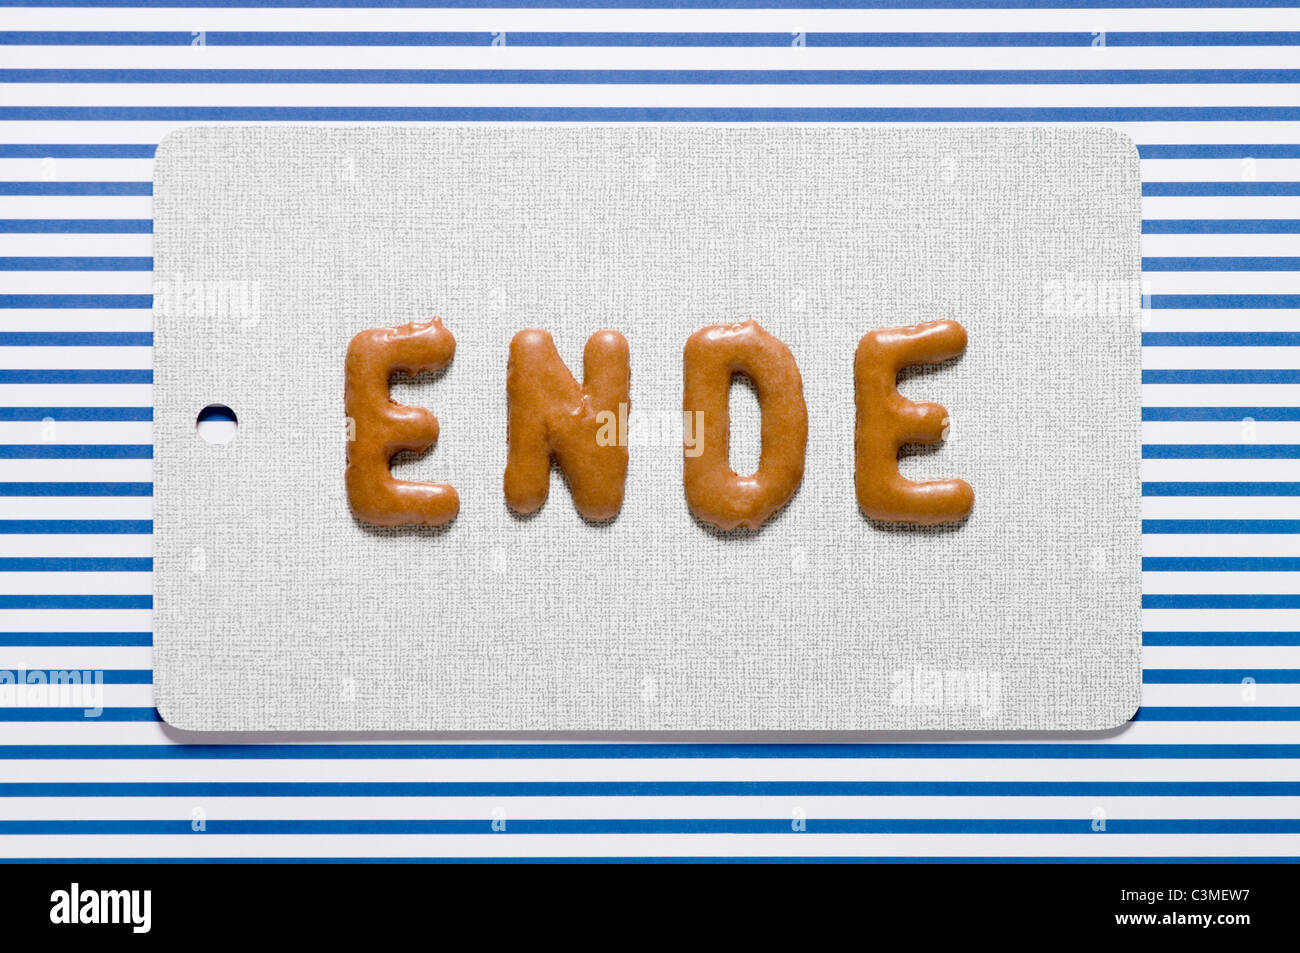 Word end written with russian bread on dish, close up - Stock Image